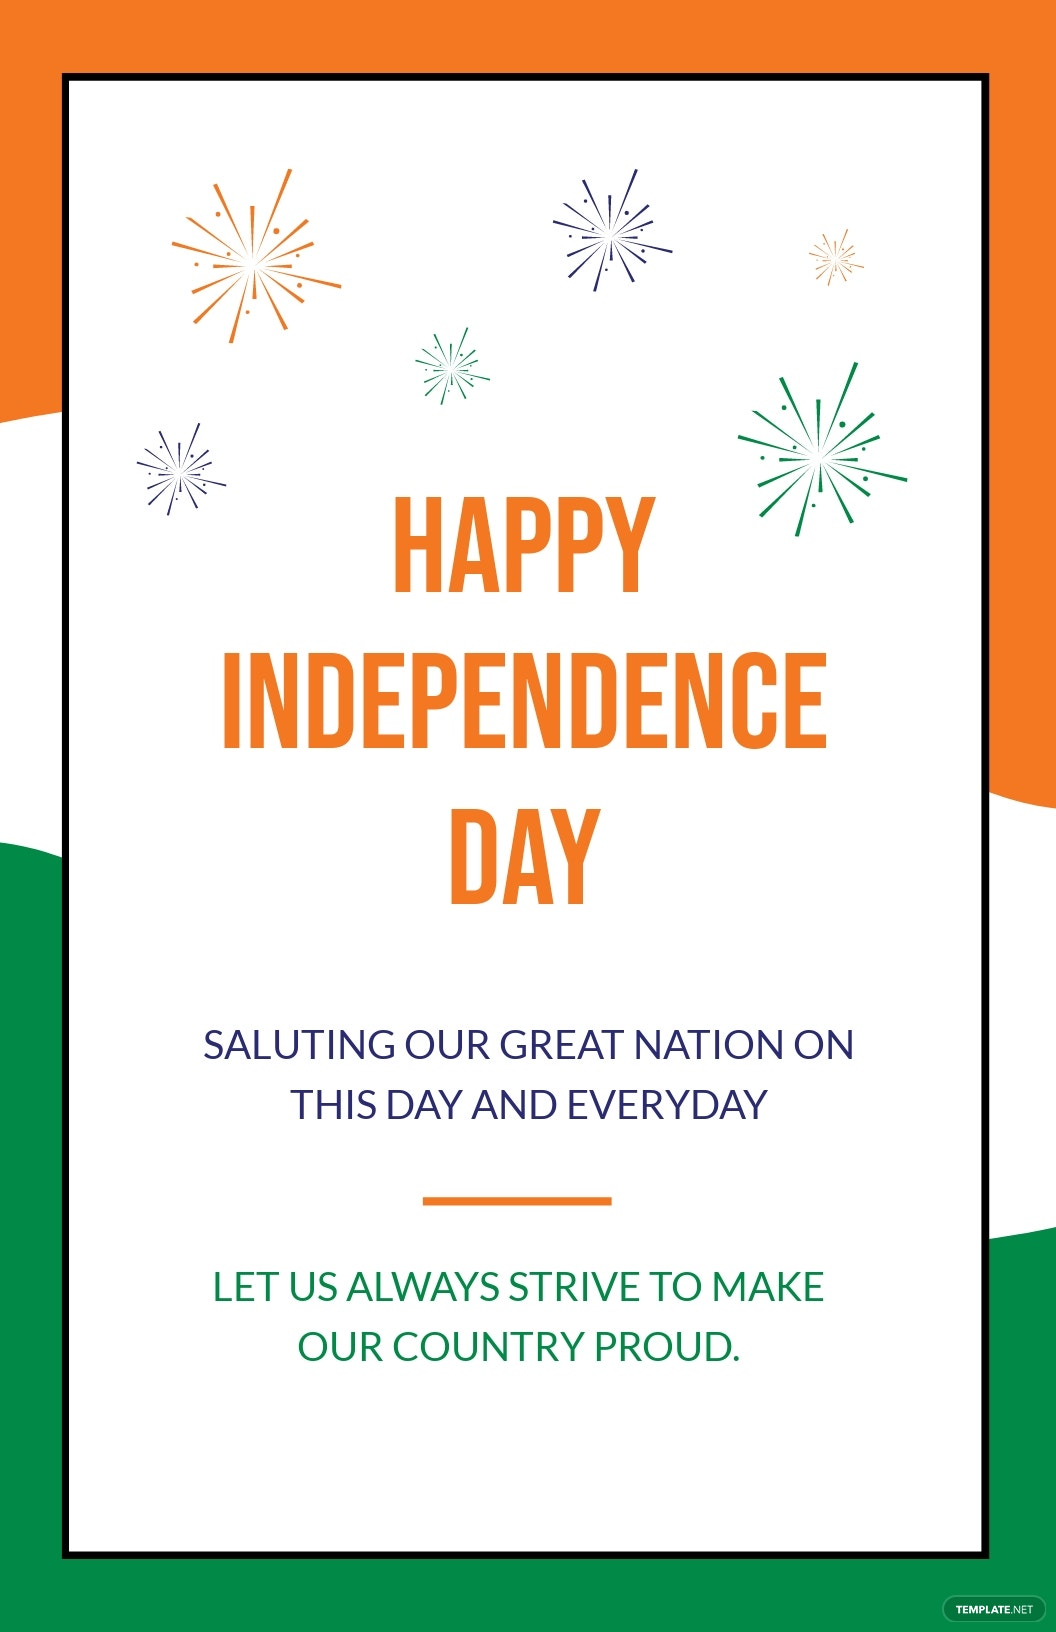 India Independence Day Greeting Card Template.jpe